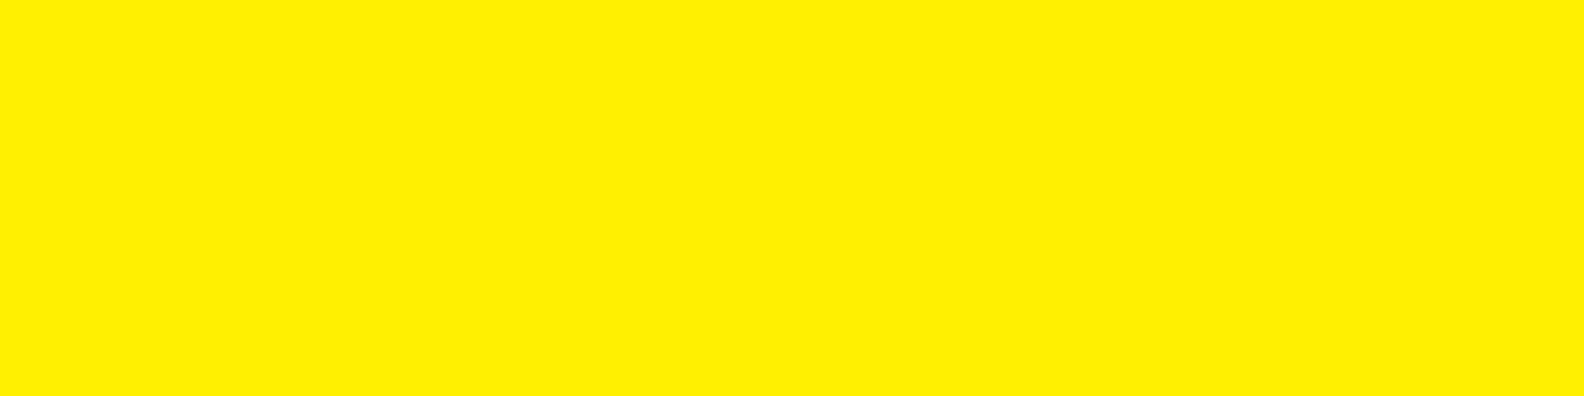 1584x396 Canary Yellow Solid Color Background